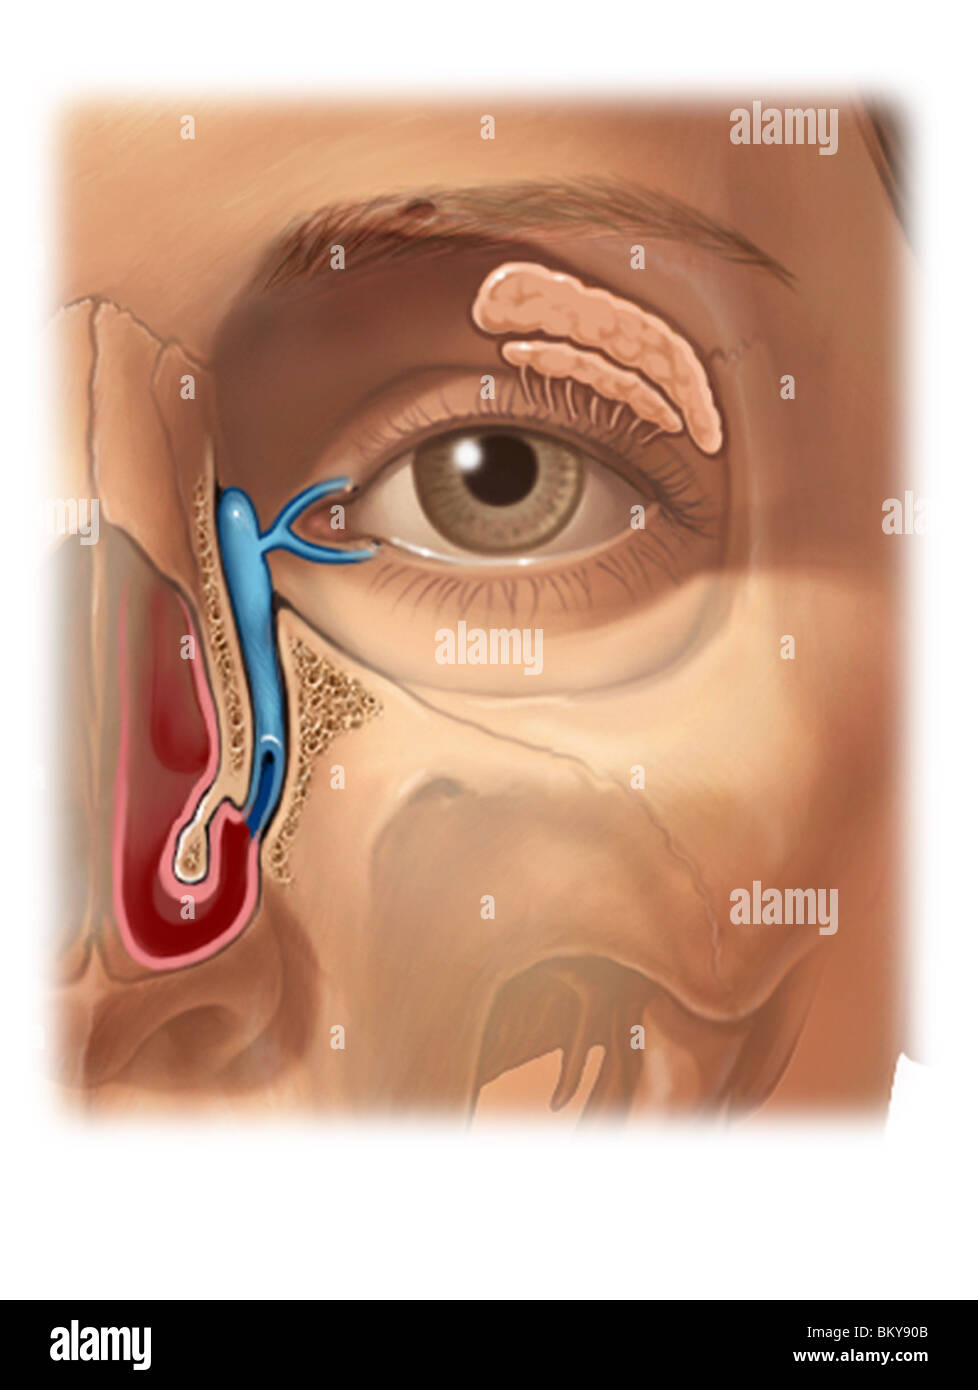 This image details the nasolacrimal duct which drains tears from the ...